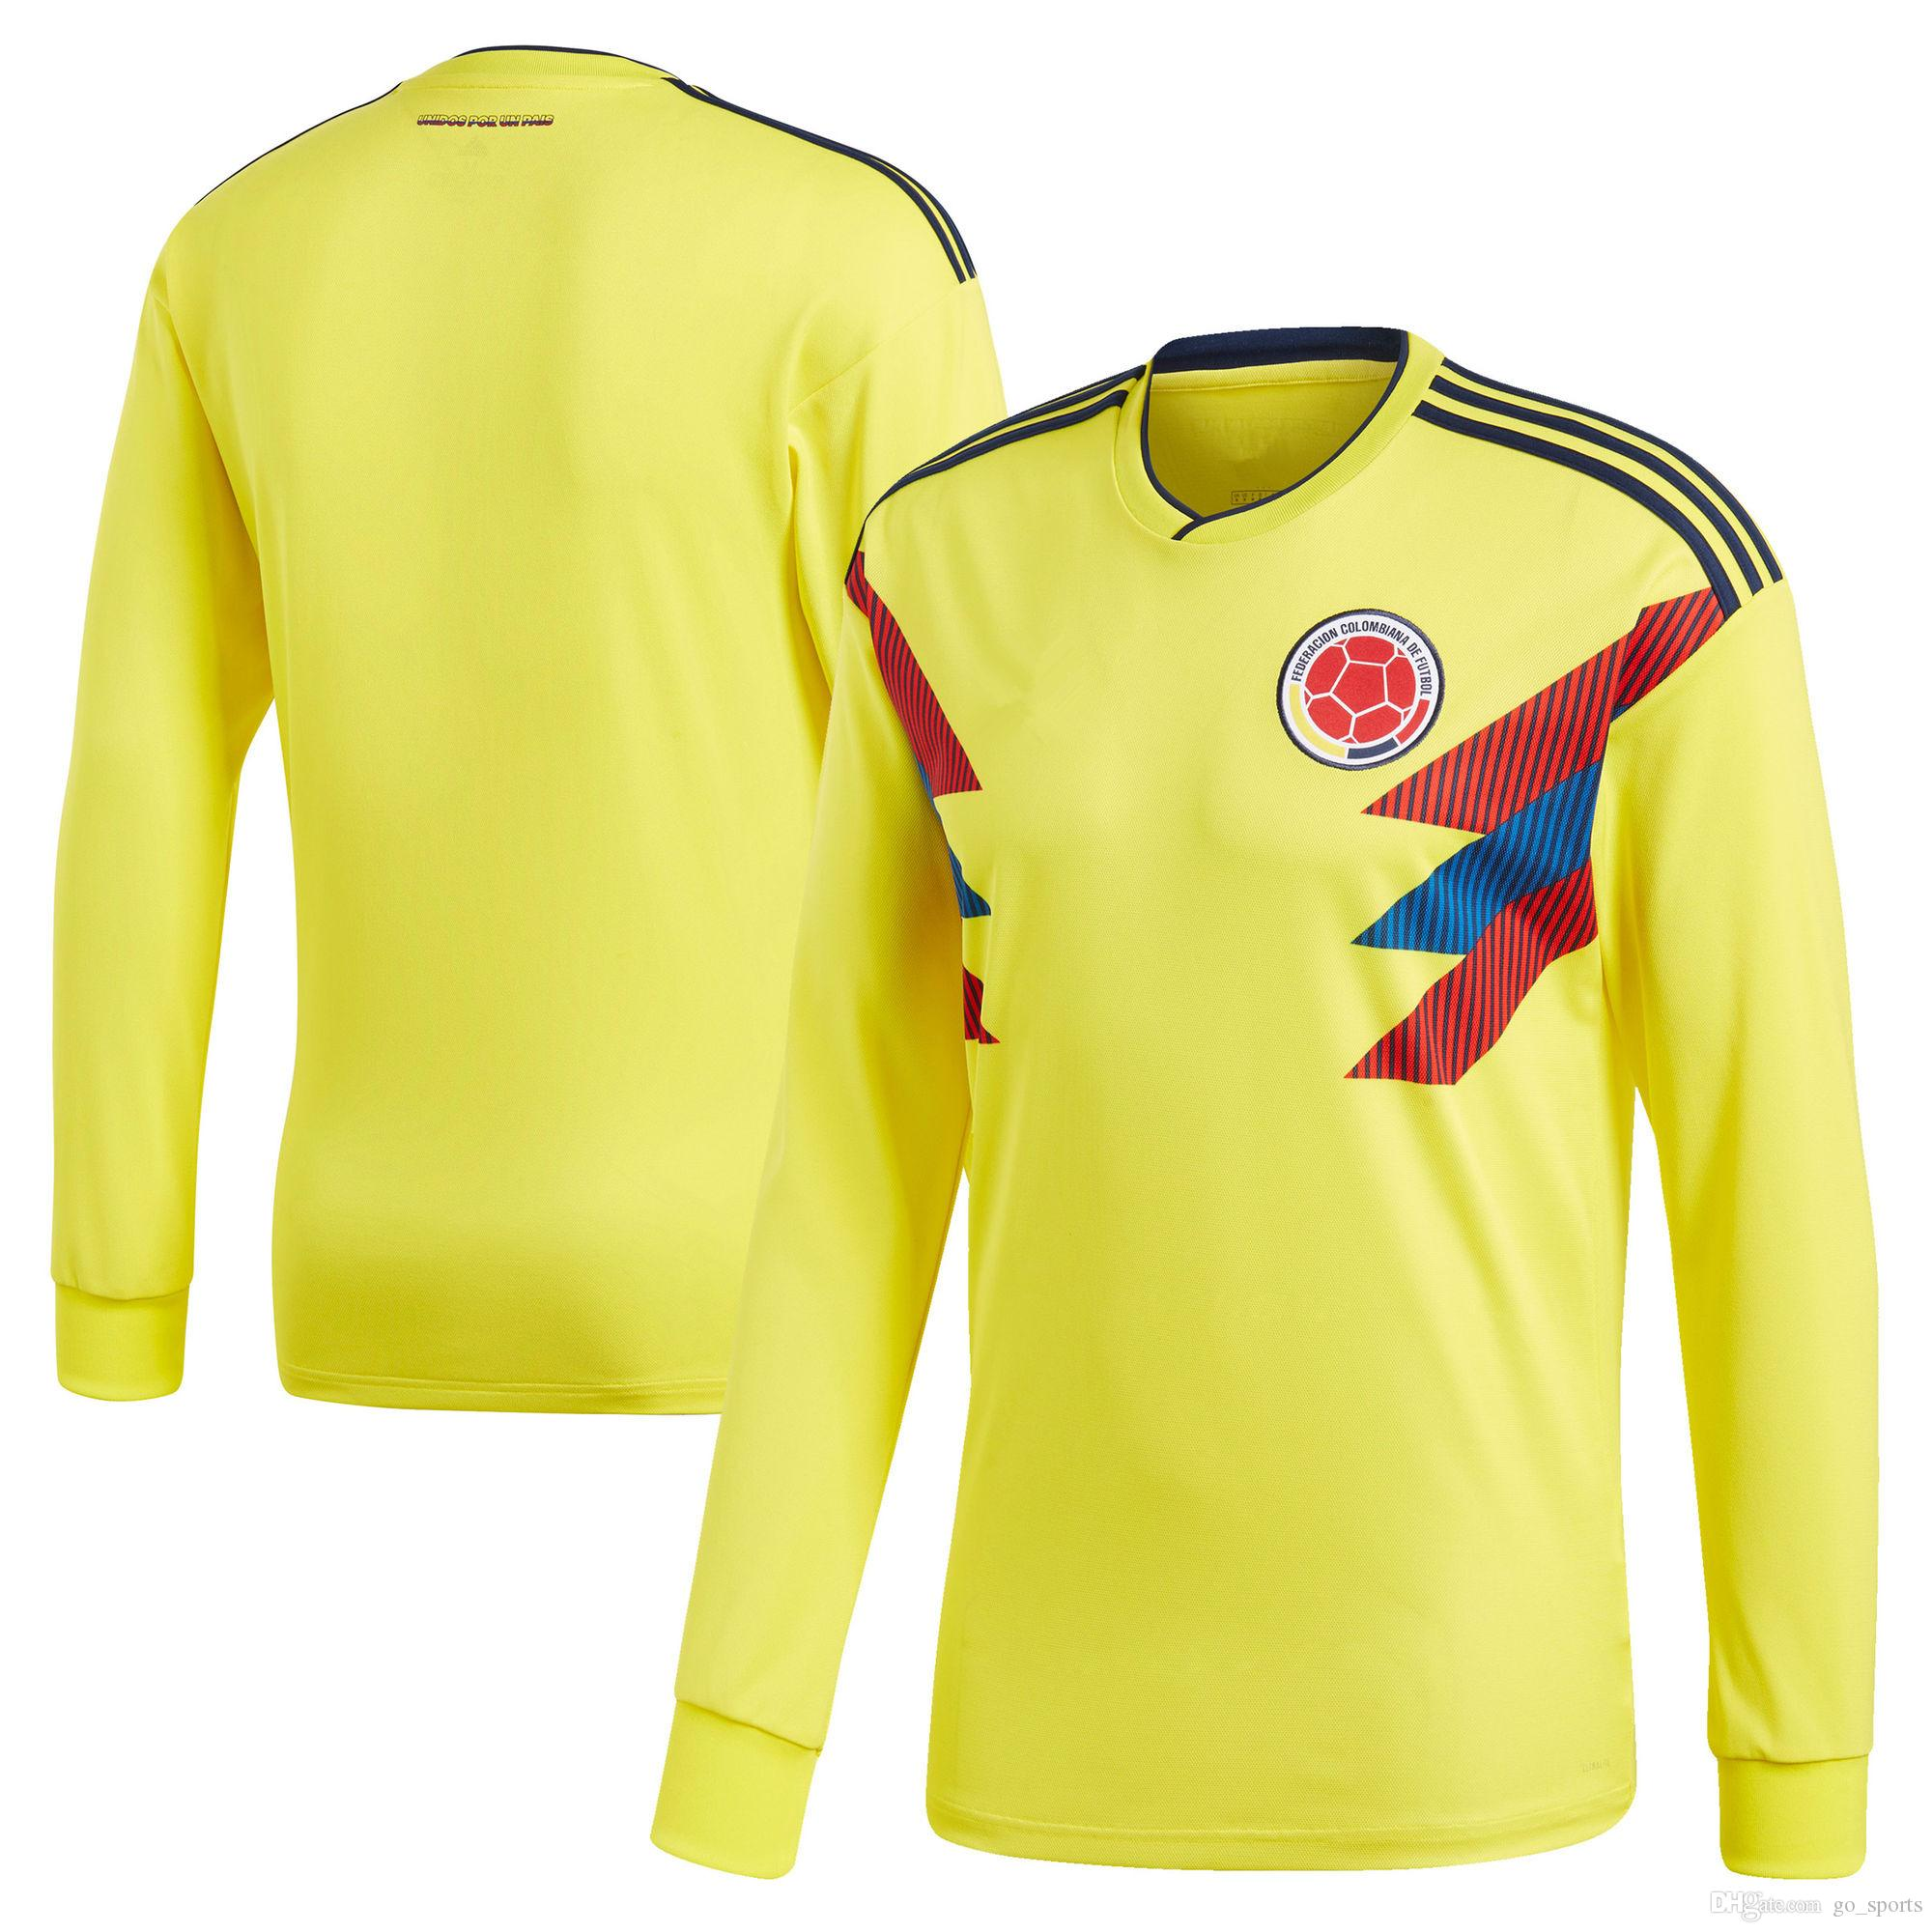 9c5be7783ac 2019 2018 Colombia Soccer Jerseys Customized Long Sleeve Best Quality  FALCAO JAMES CUADRADO TEO BACCA Soccer Jersey Football Jerseys From  Go_sports, ...